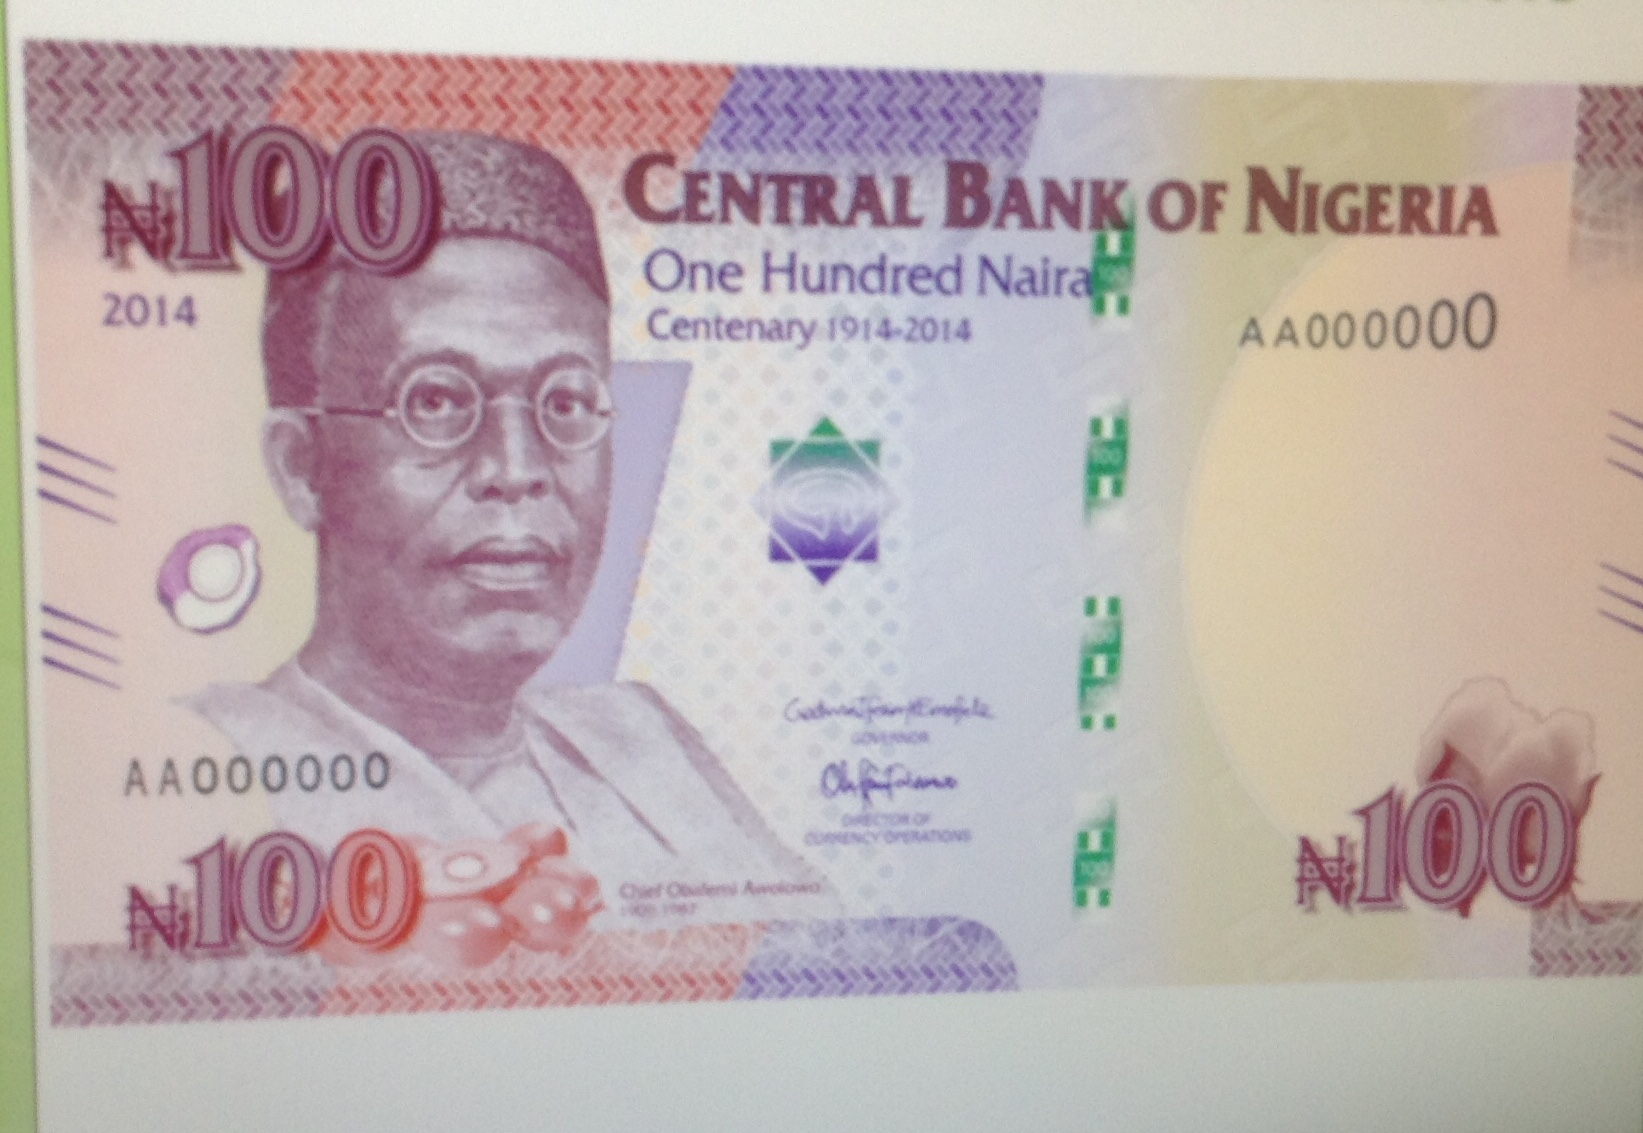 There Is No Jewish Symbol On The New 100 Naira Note Presidency